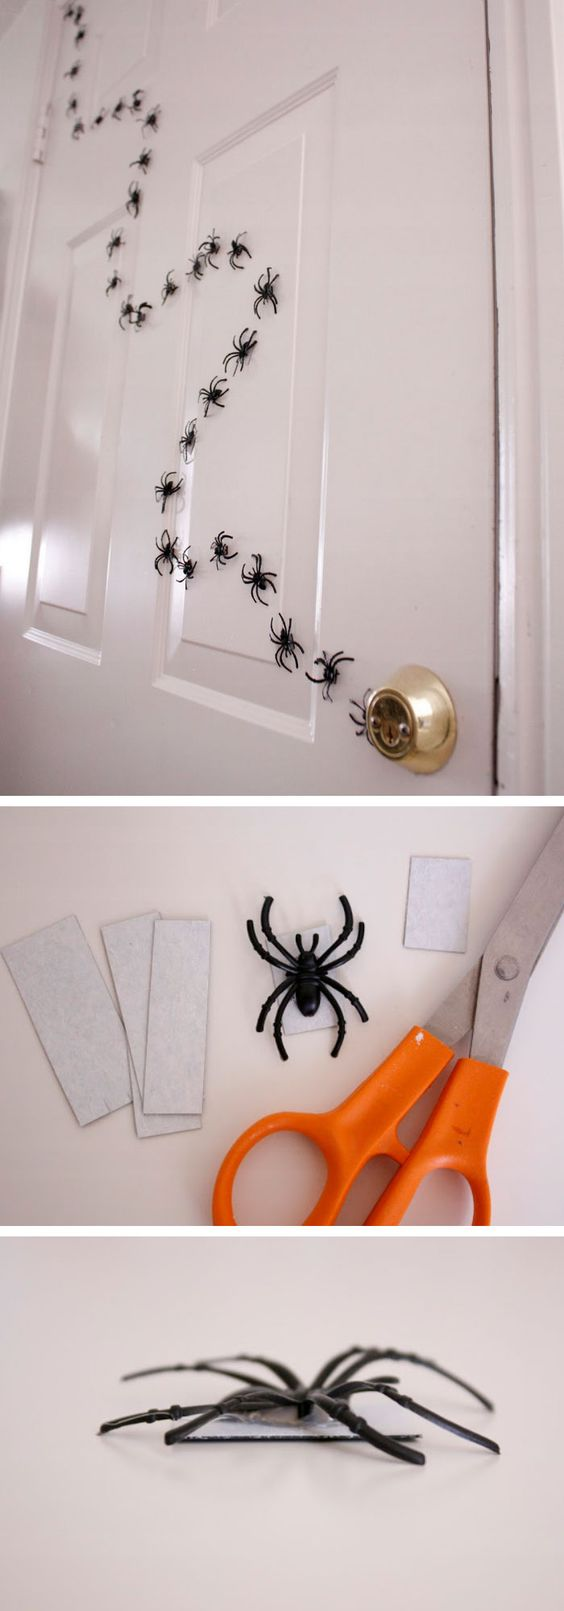 EASY and CHEAP Magnetic Halloween Spiders Decorations | Delia Creates - Spooktacular Halloween DIYs, Crafts and Projects - The BEST Do it Yourself Halloween Decorations #halloween #halloweendecorations